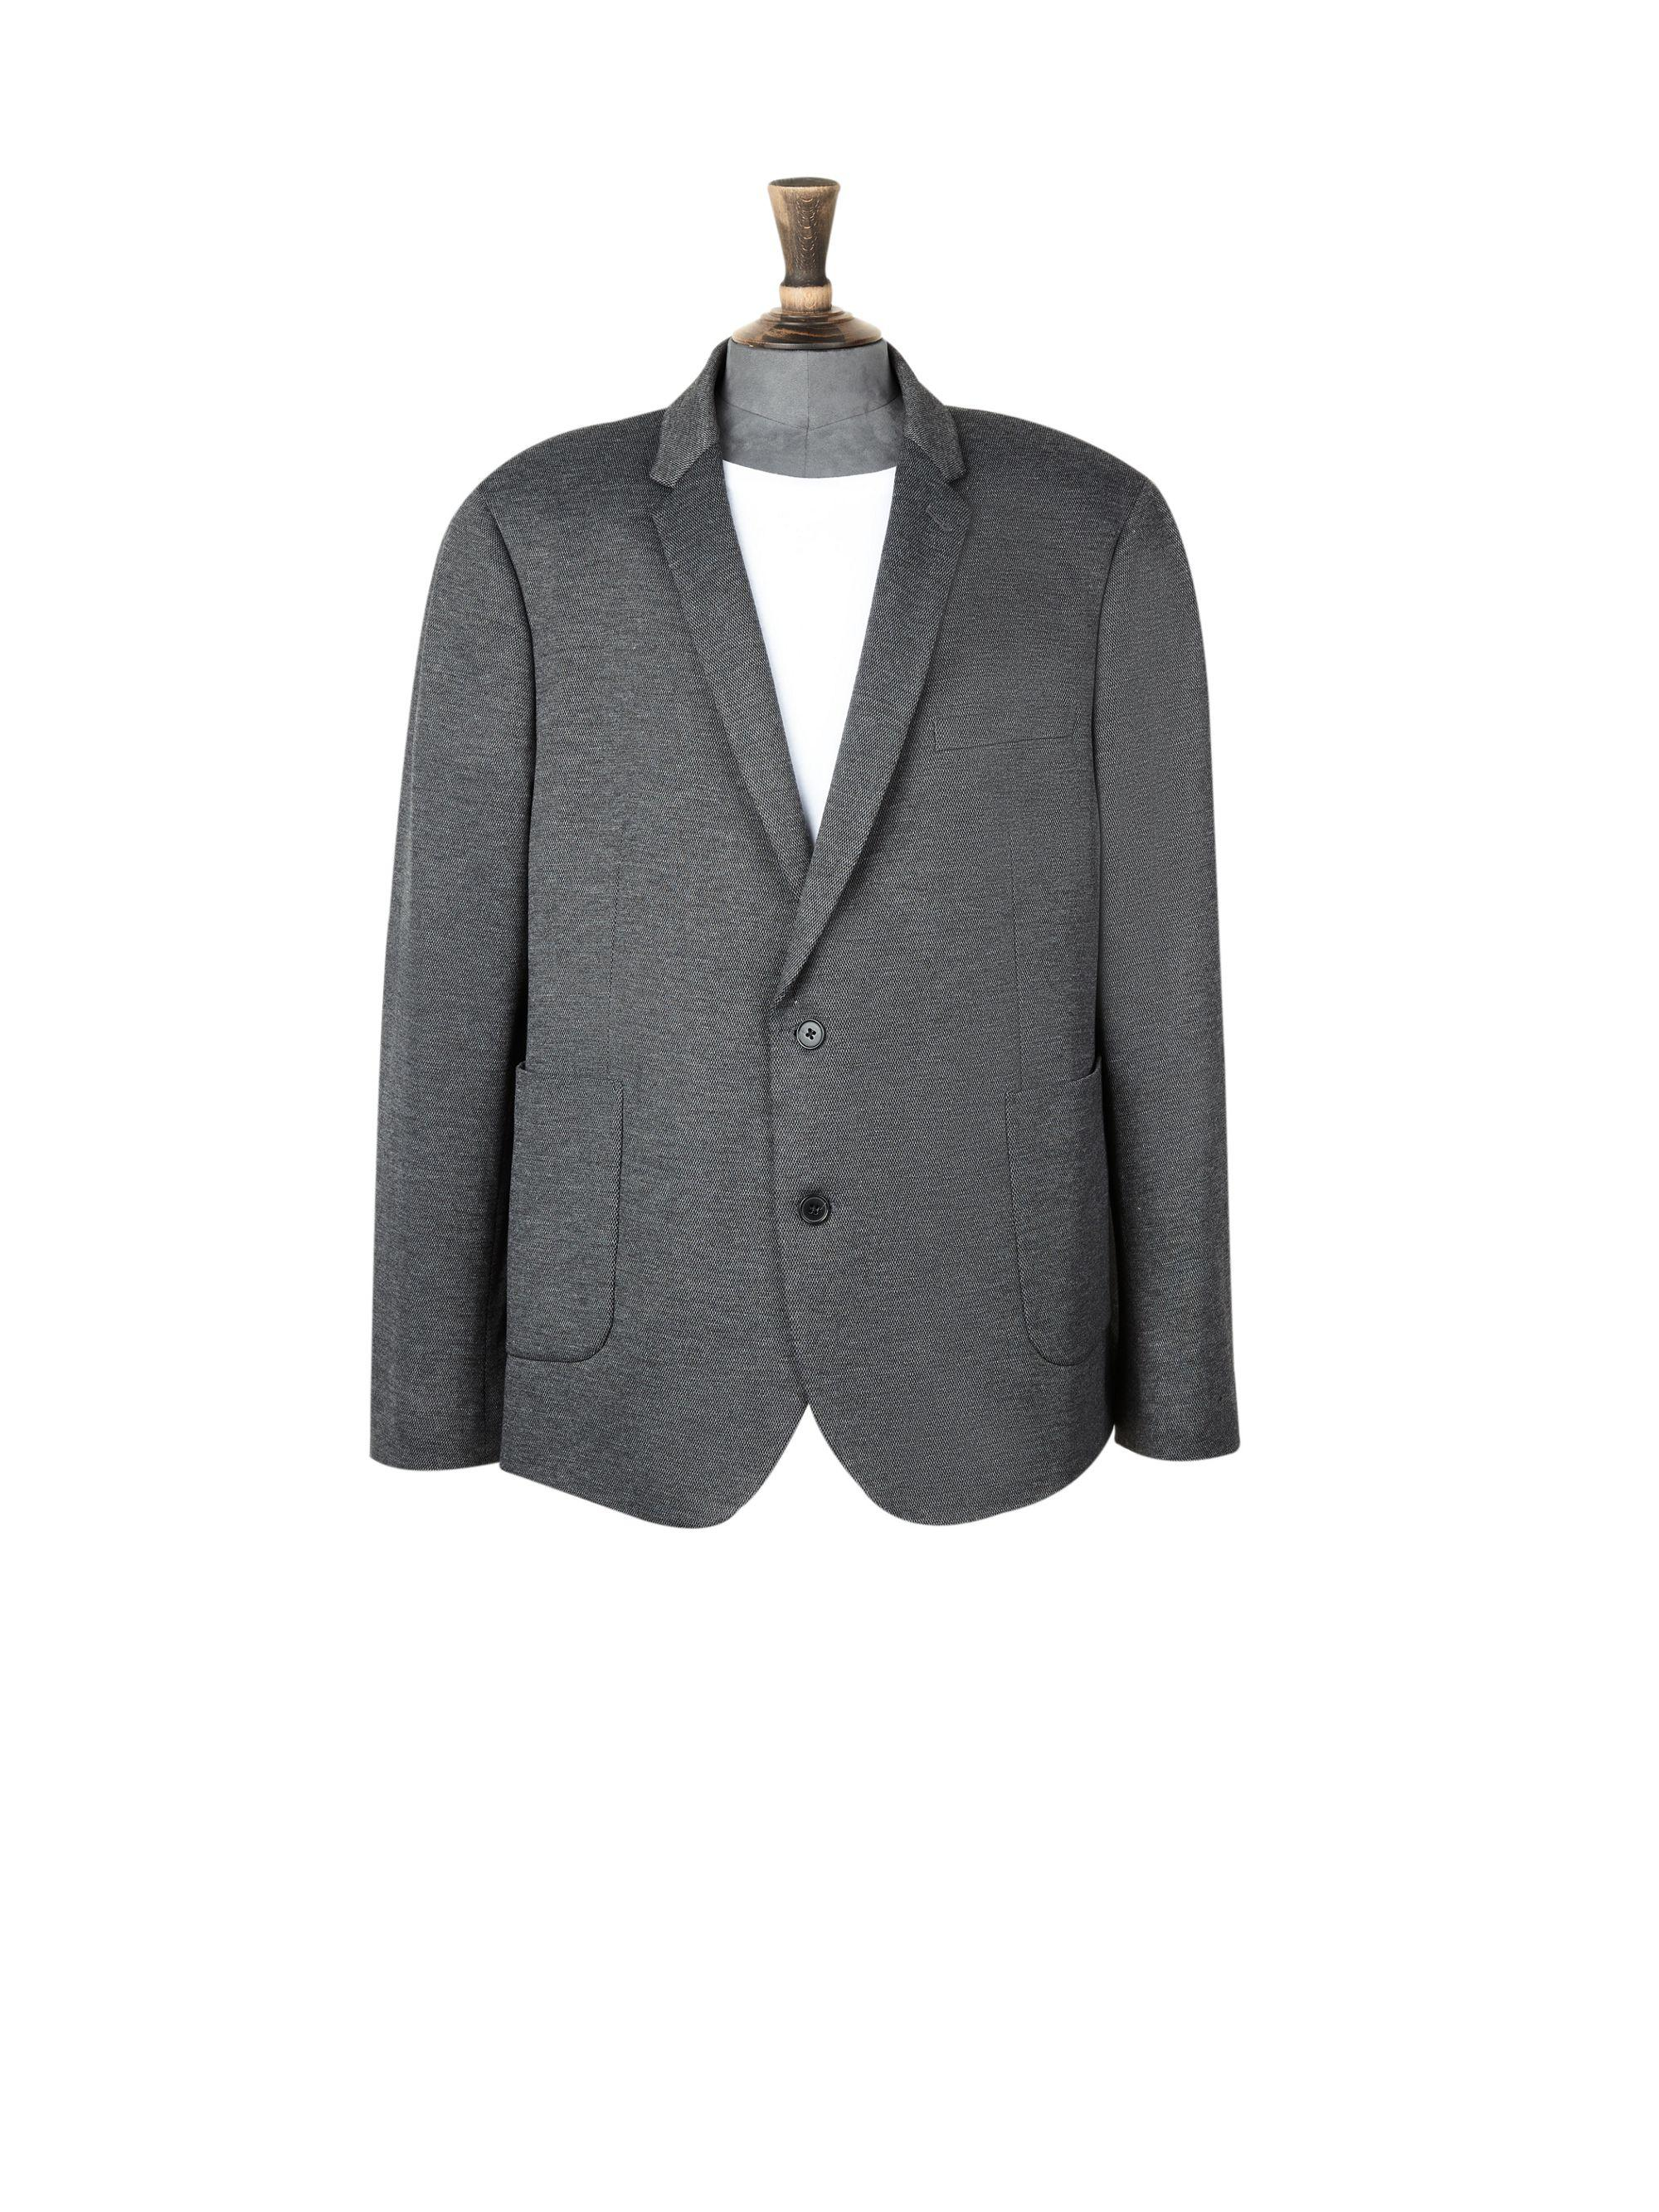 6a419a642cd Burton Big & Tall Black Pique Jersey Blazer in Gray for Men - Lyst